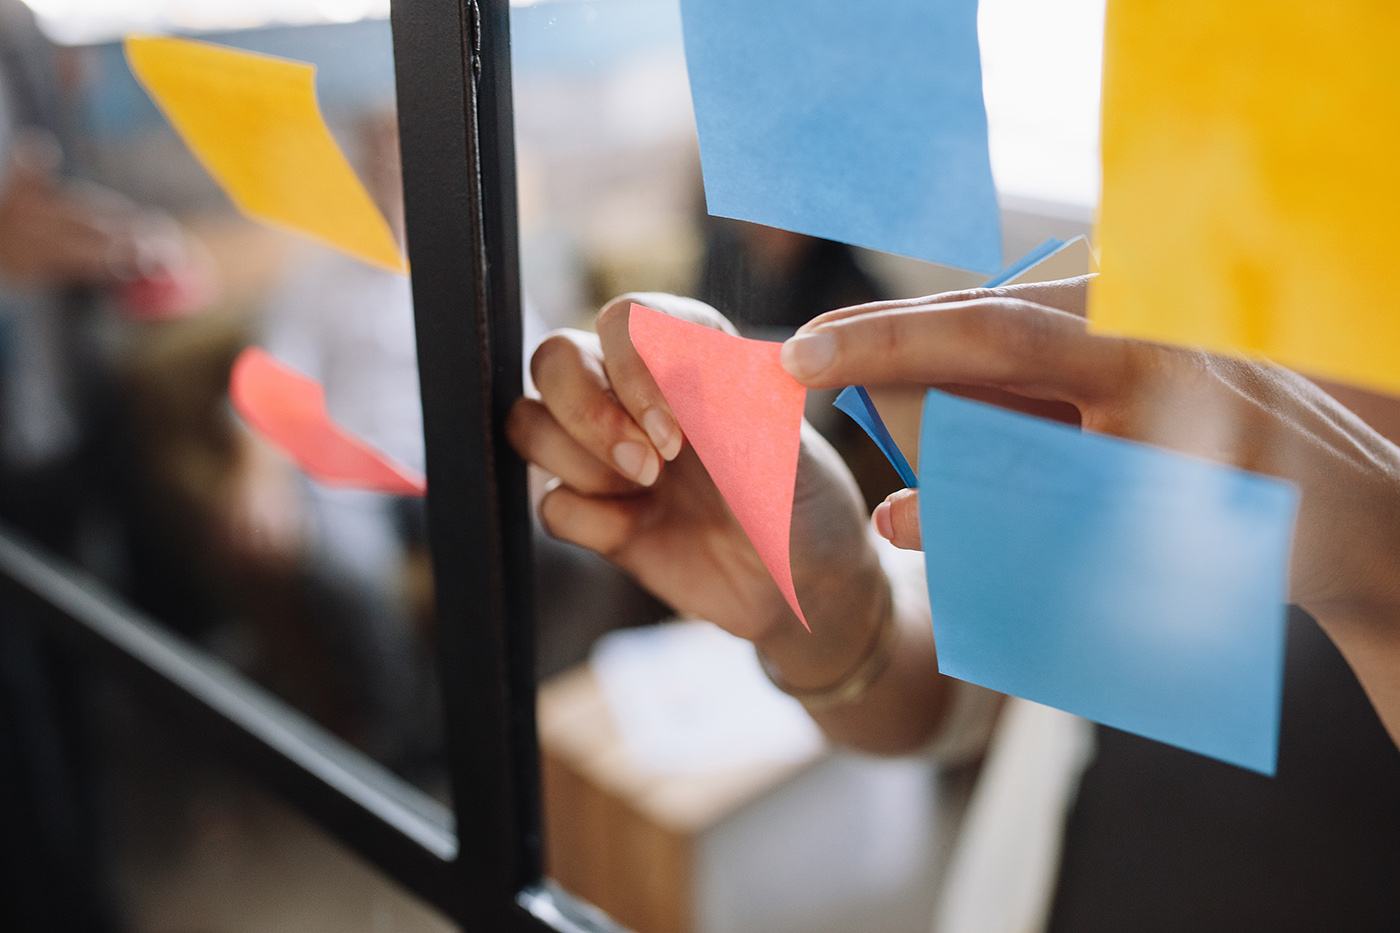 post-it notes on a window